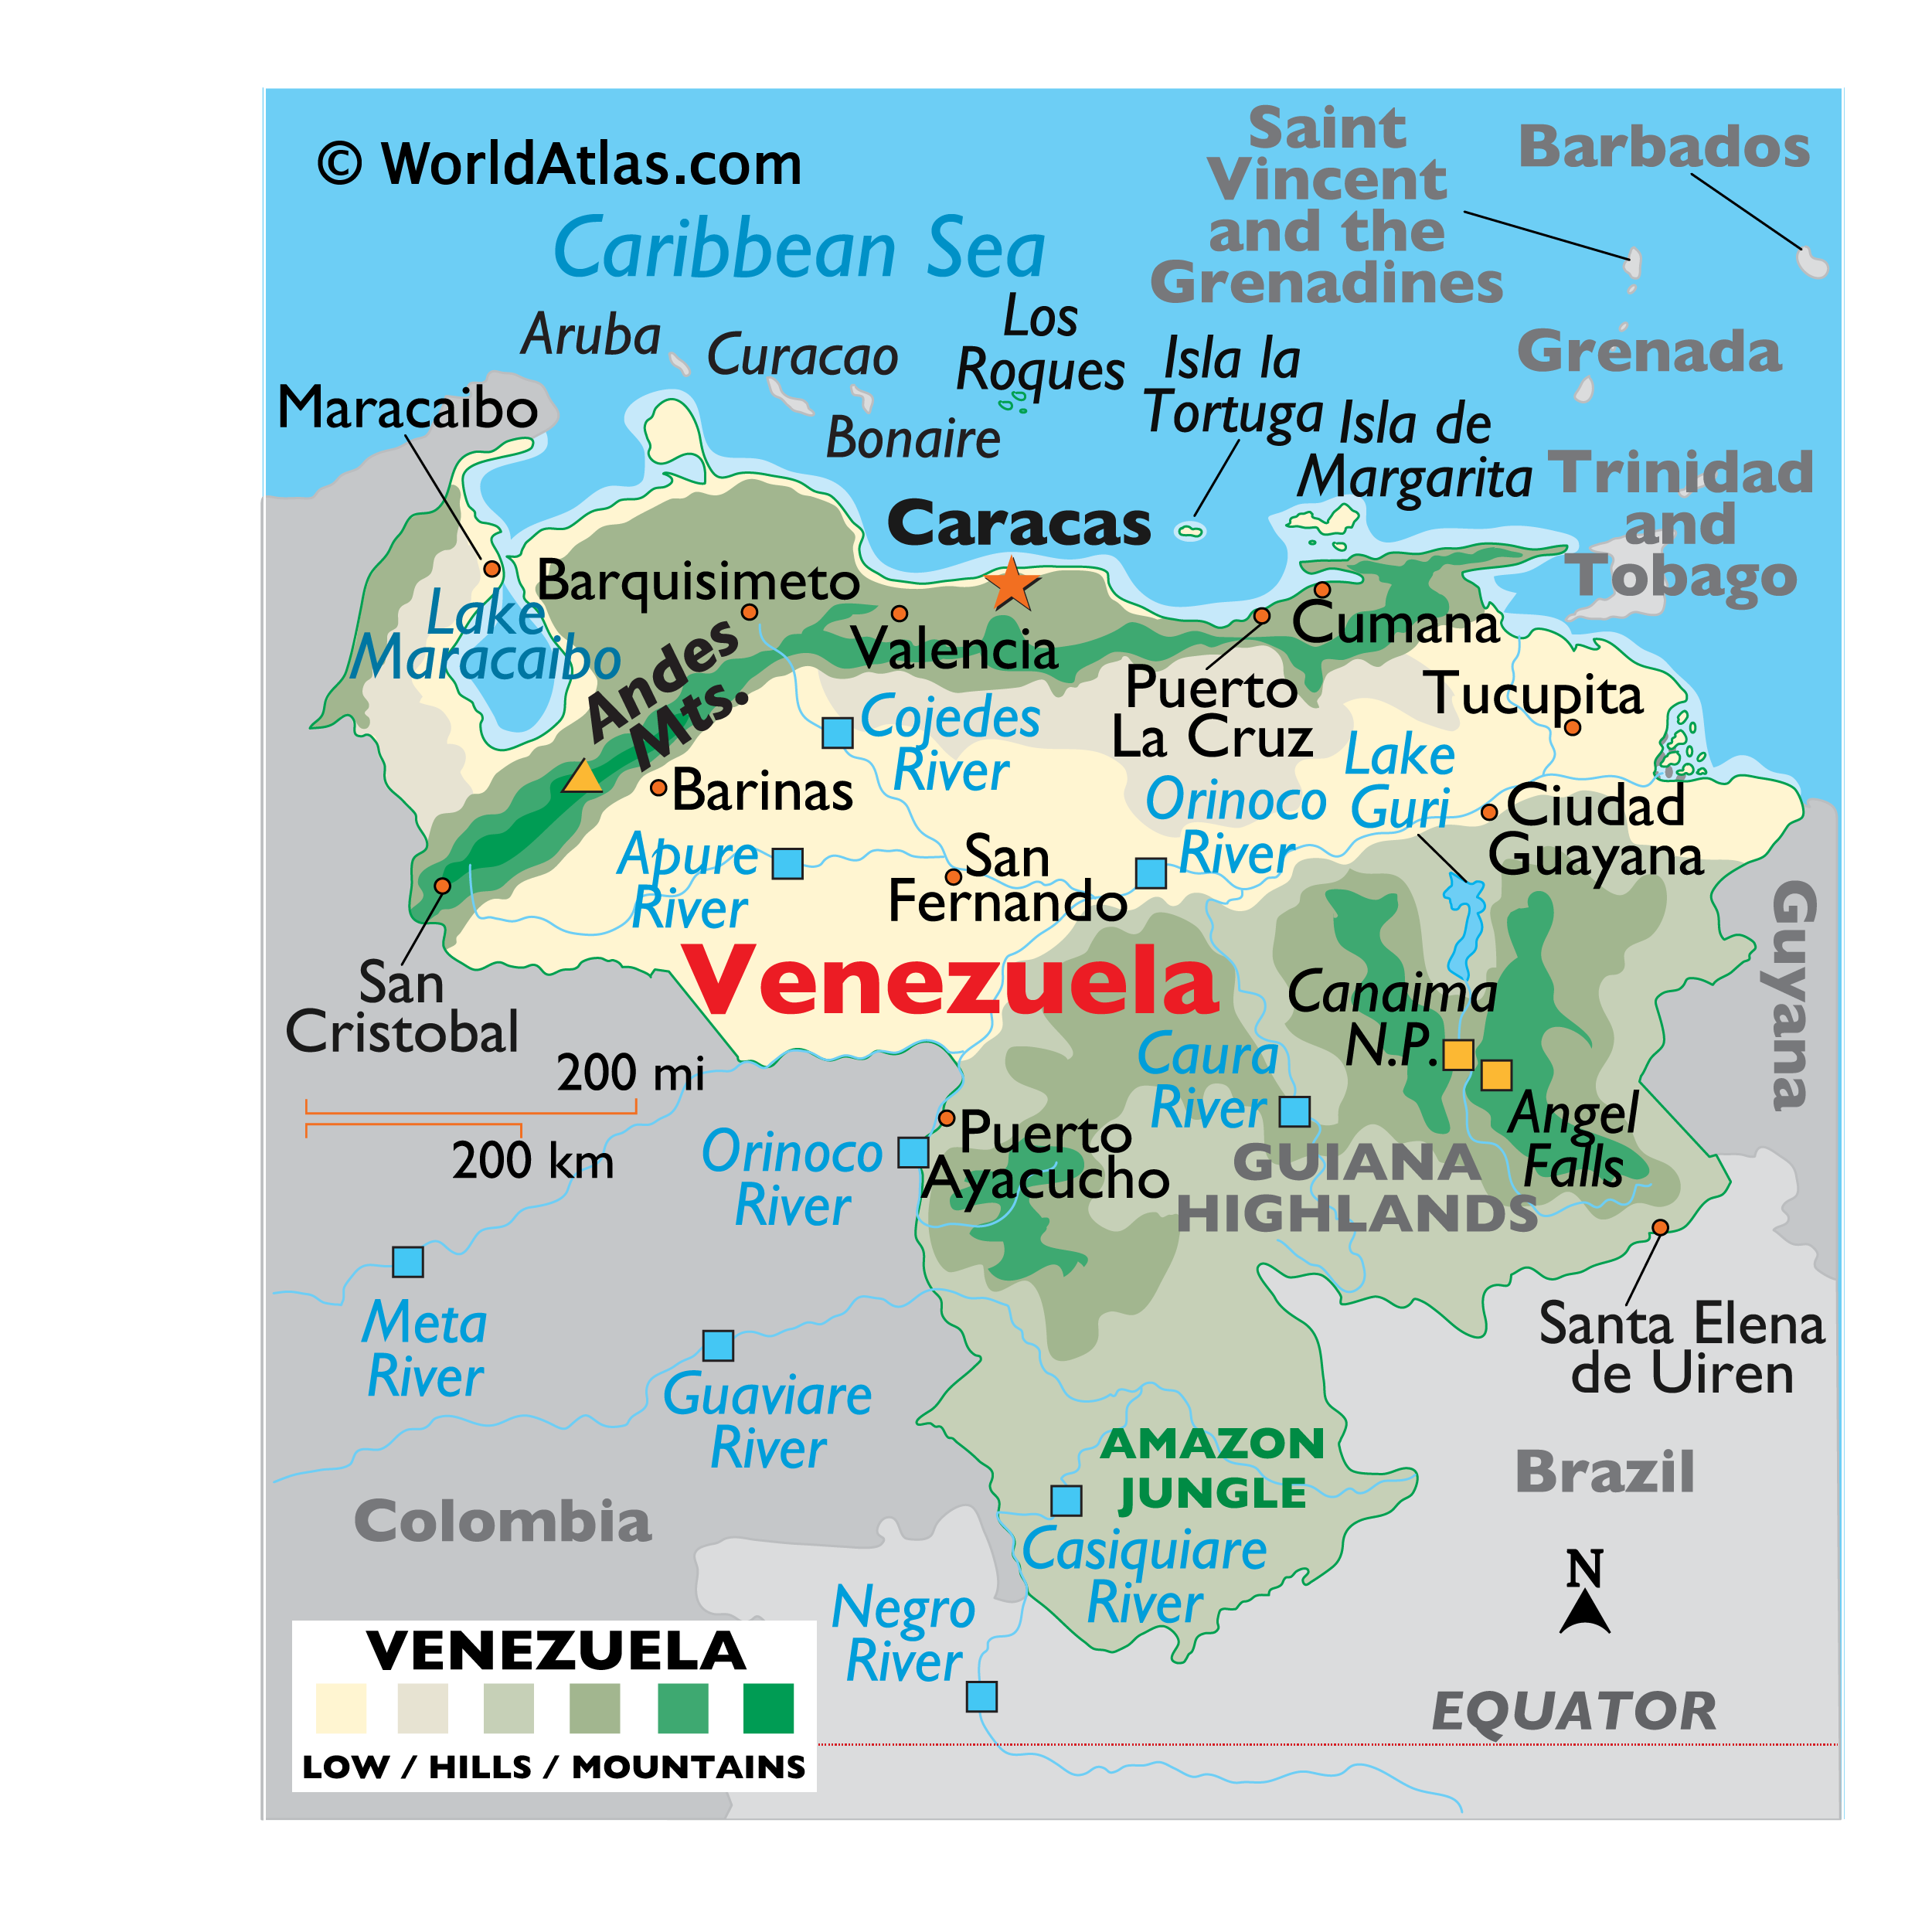 Physical Map of Venezuela showing relief, mountains, major lakes and rivers, the Angel Falls, Amazon Jungle, important cities, bordering countries, and more.